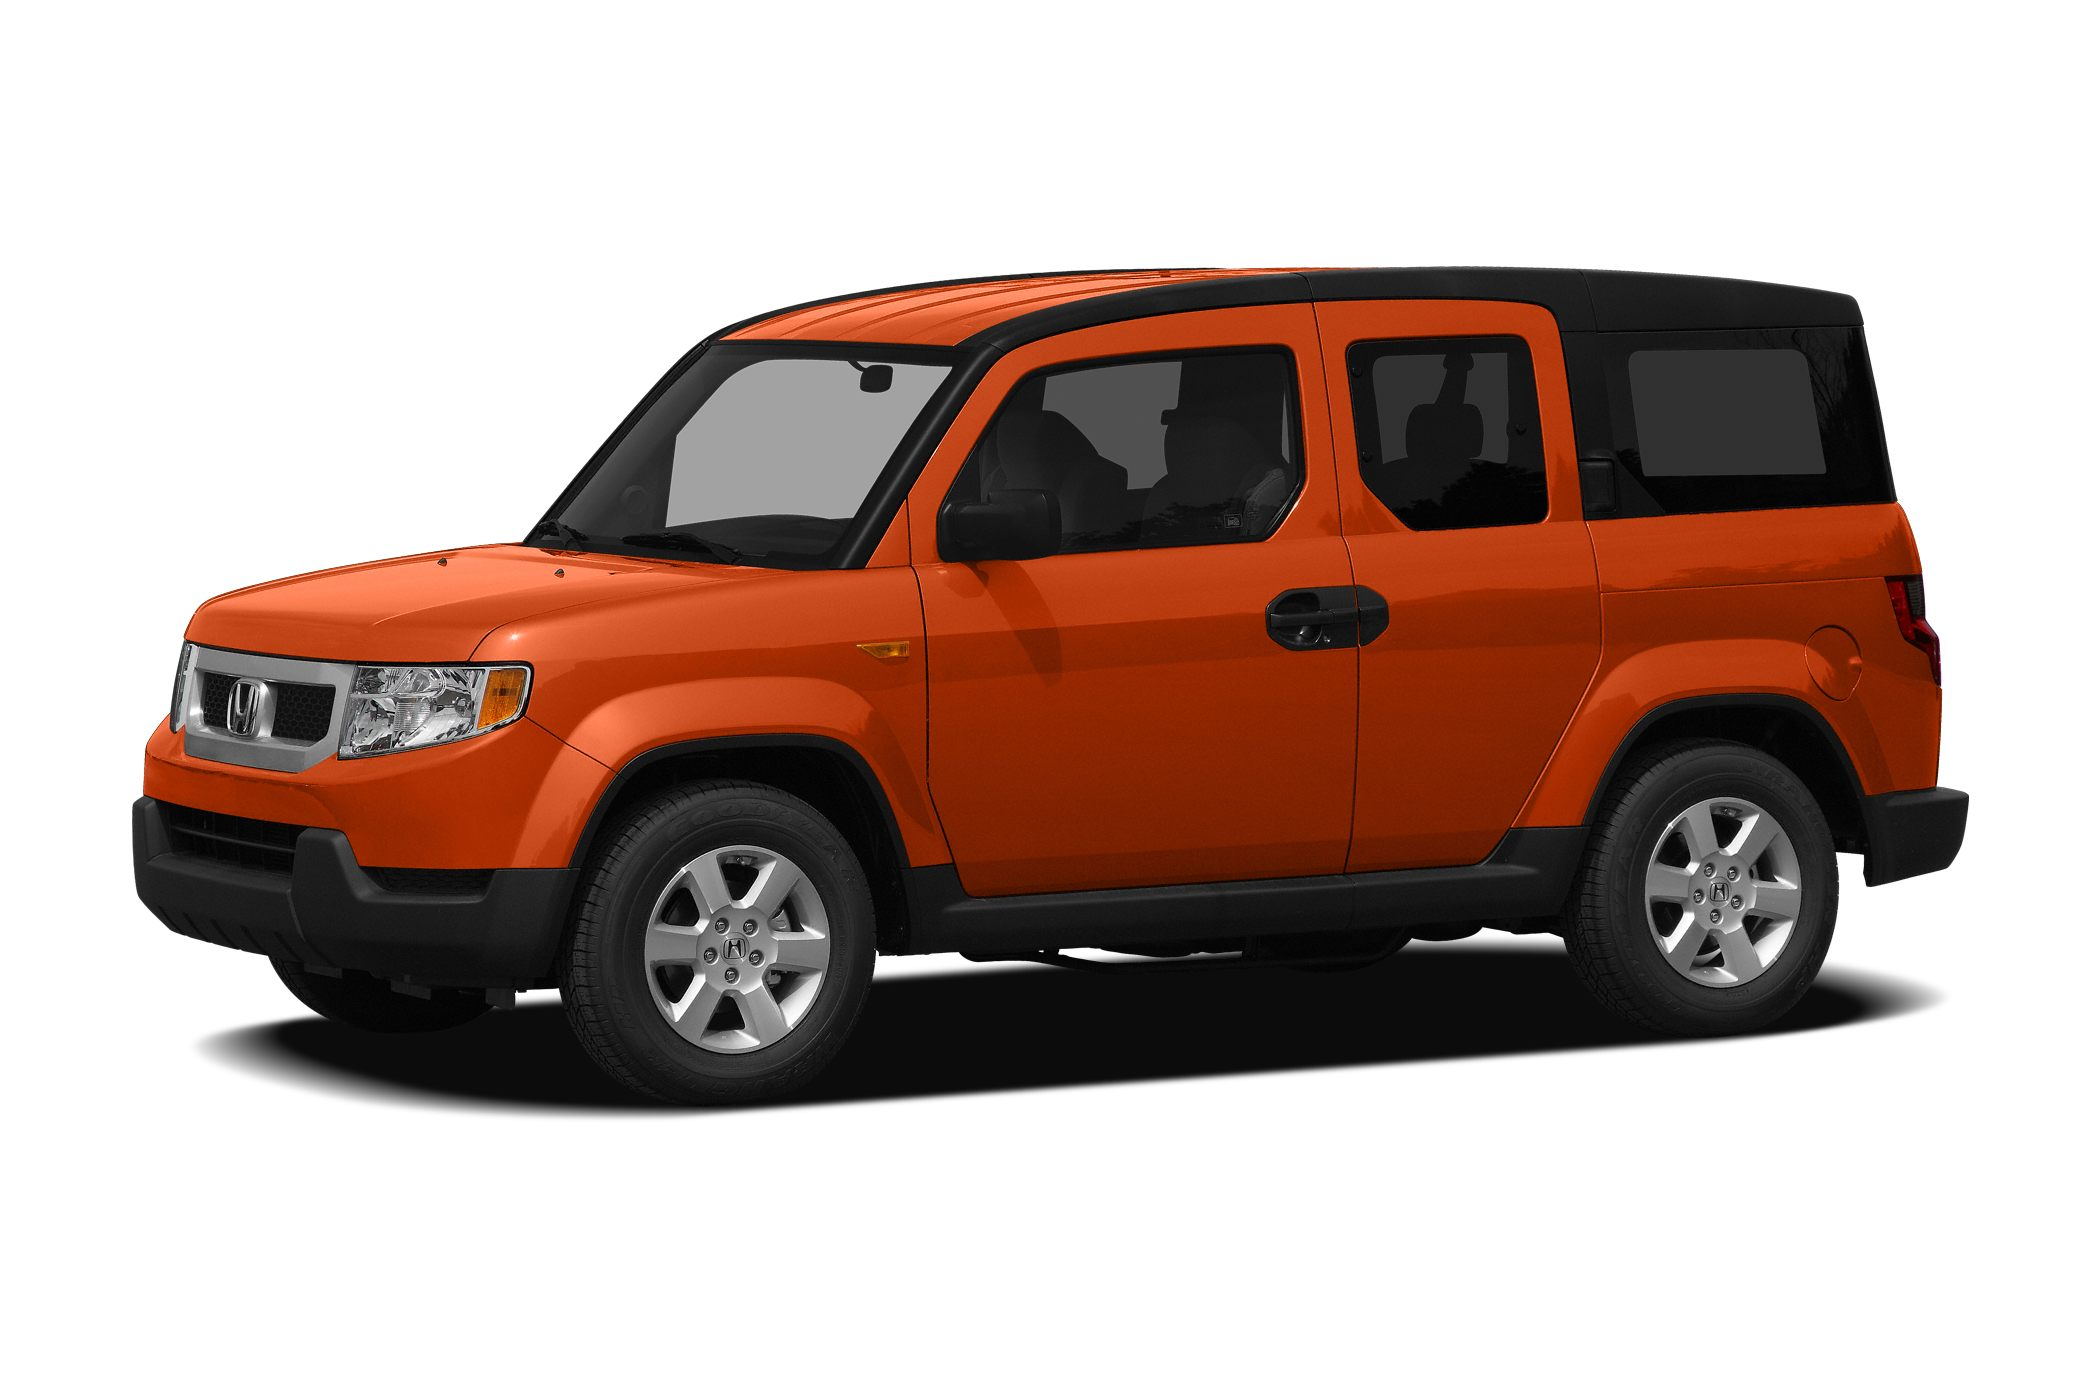 2010 Honda Element EX SUV for sale in Beckley for $22,995 with 44,741 miles